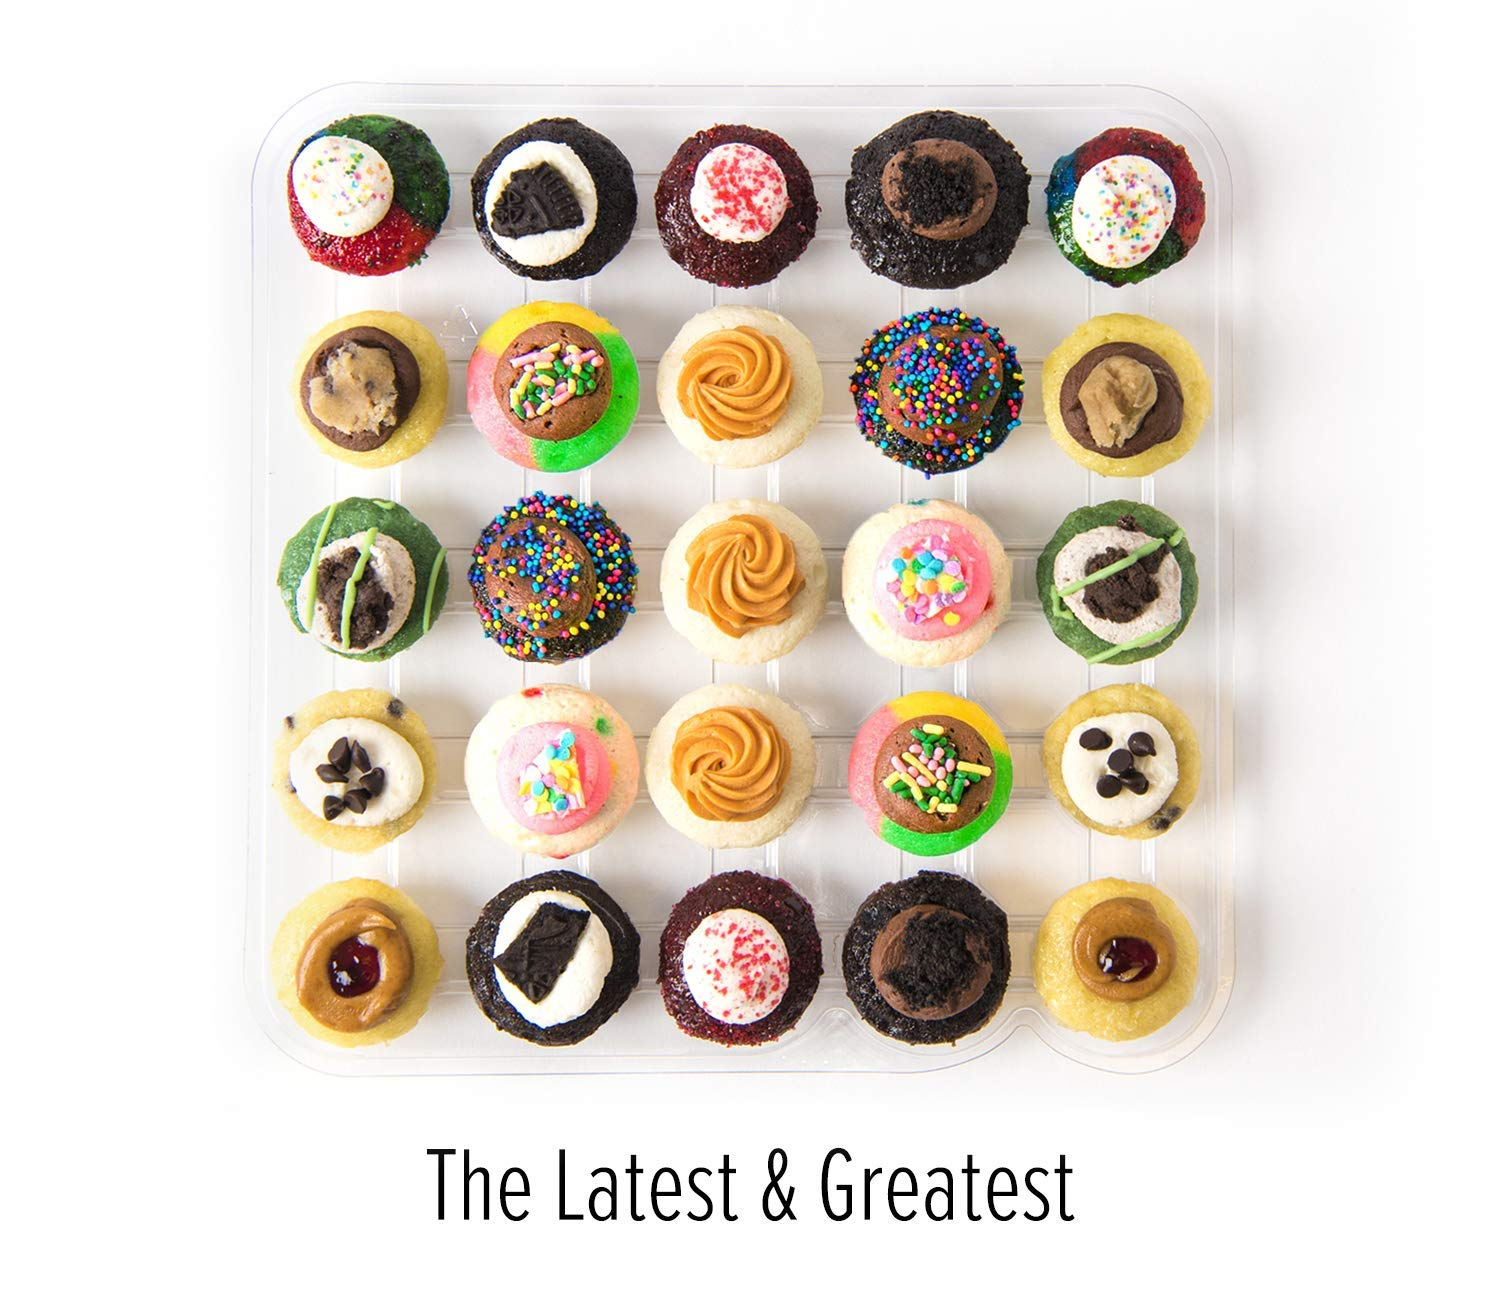 Amazon.com : Baked by Melissa Cupcakes Gift Box + The Latest & Greatest - Assorted Bite-Size Cupcakes Gift Box : Grocery & Gourmet Food